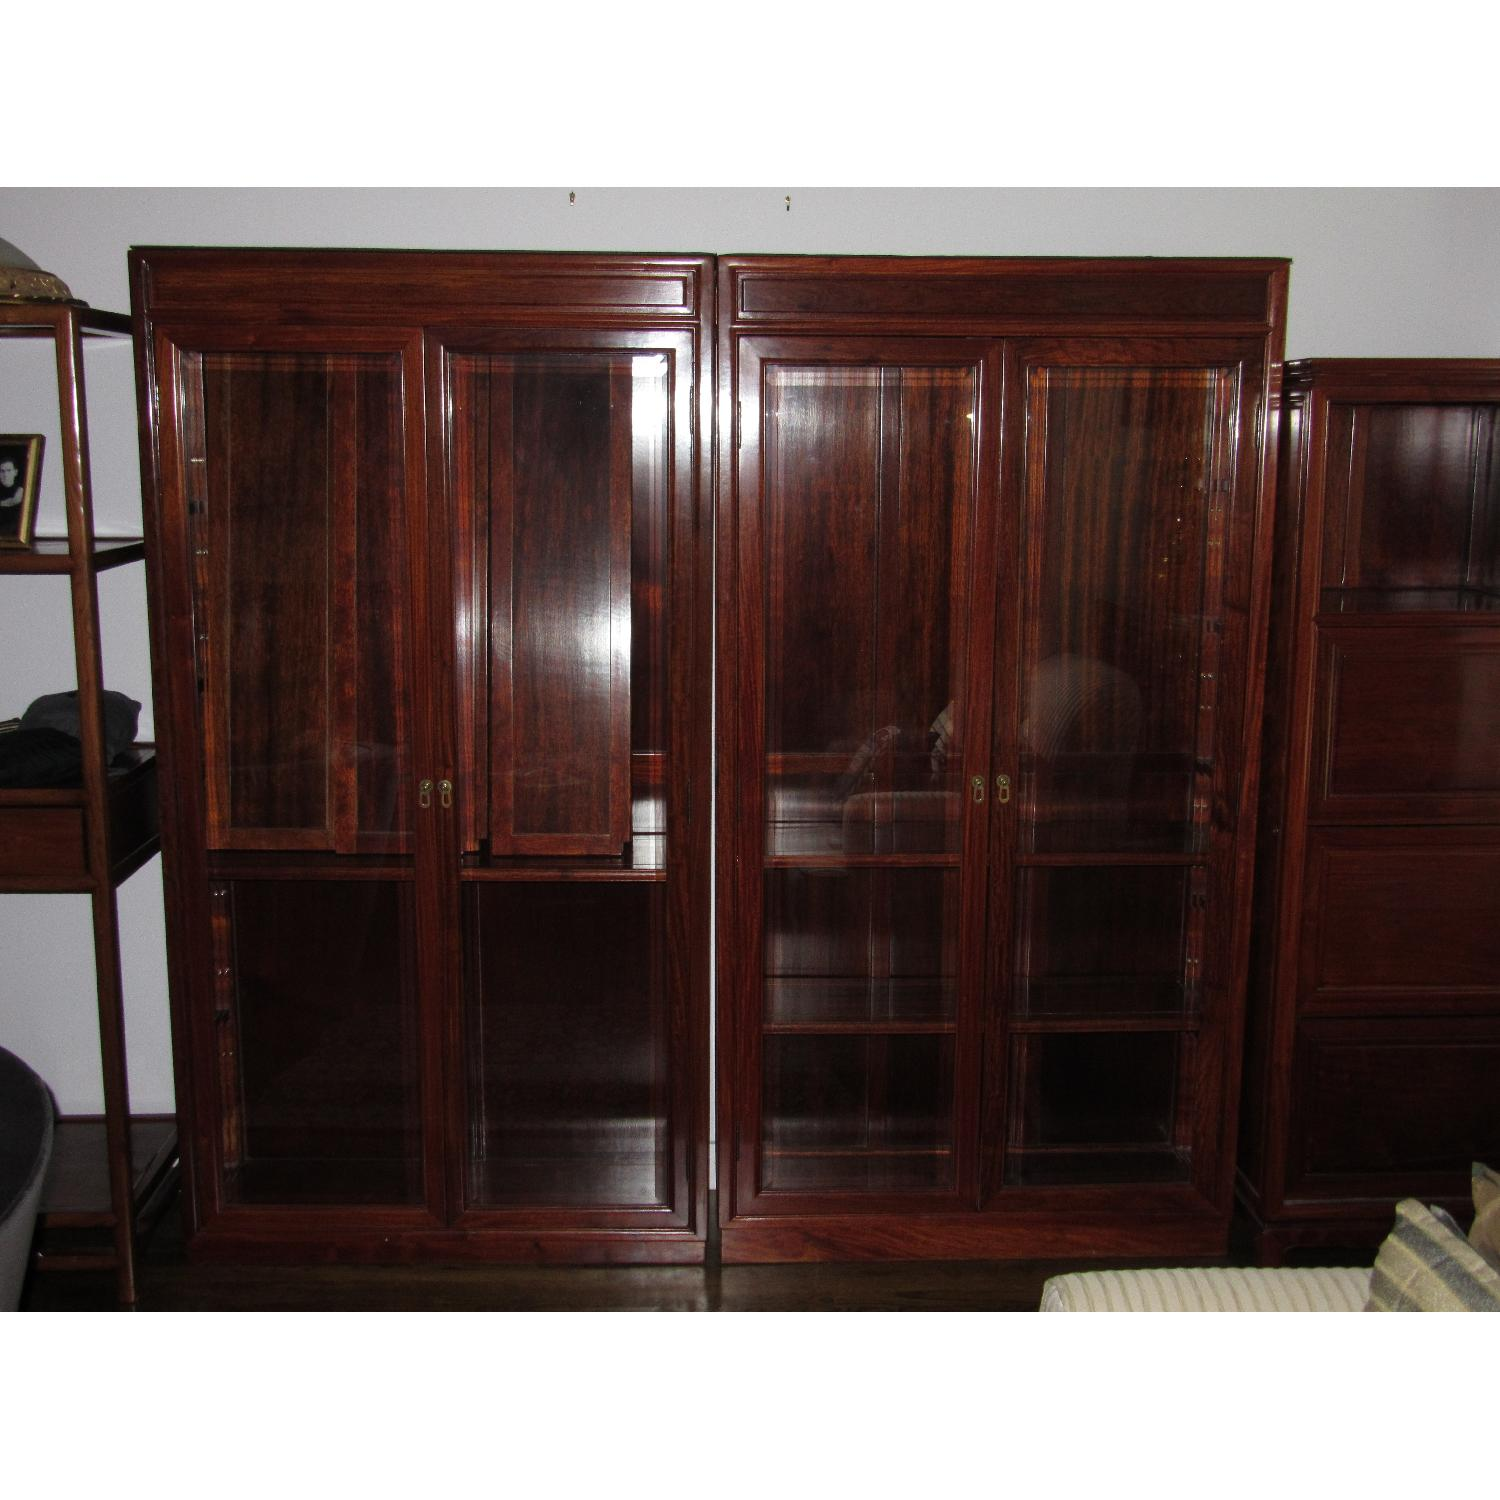 Rosewood Elm Glass Door Cabinets - 2 Available - image-2